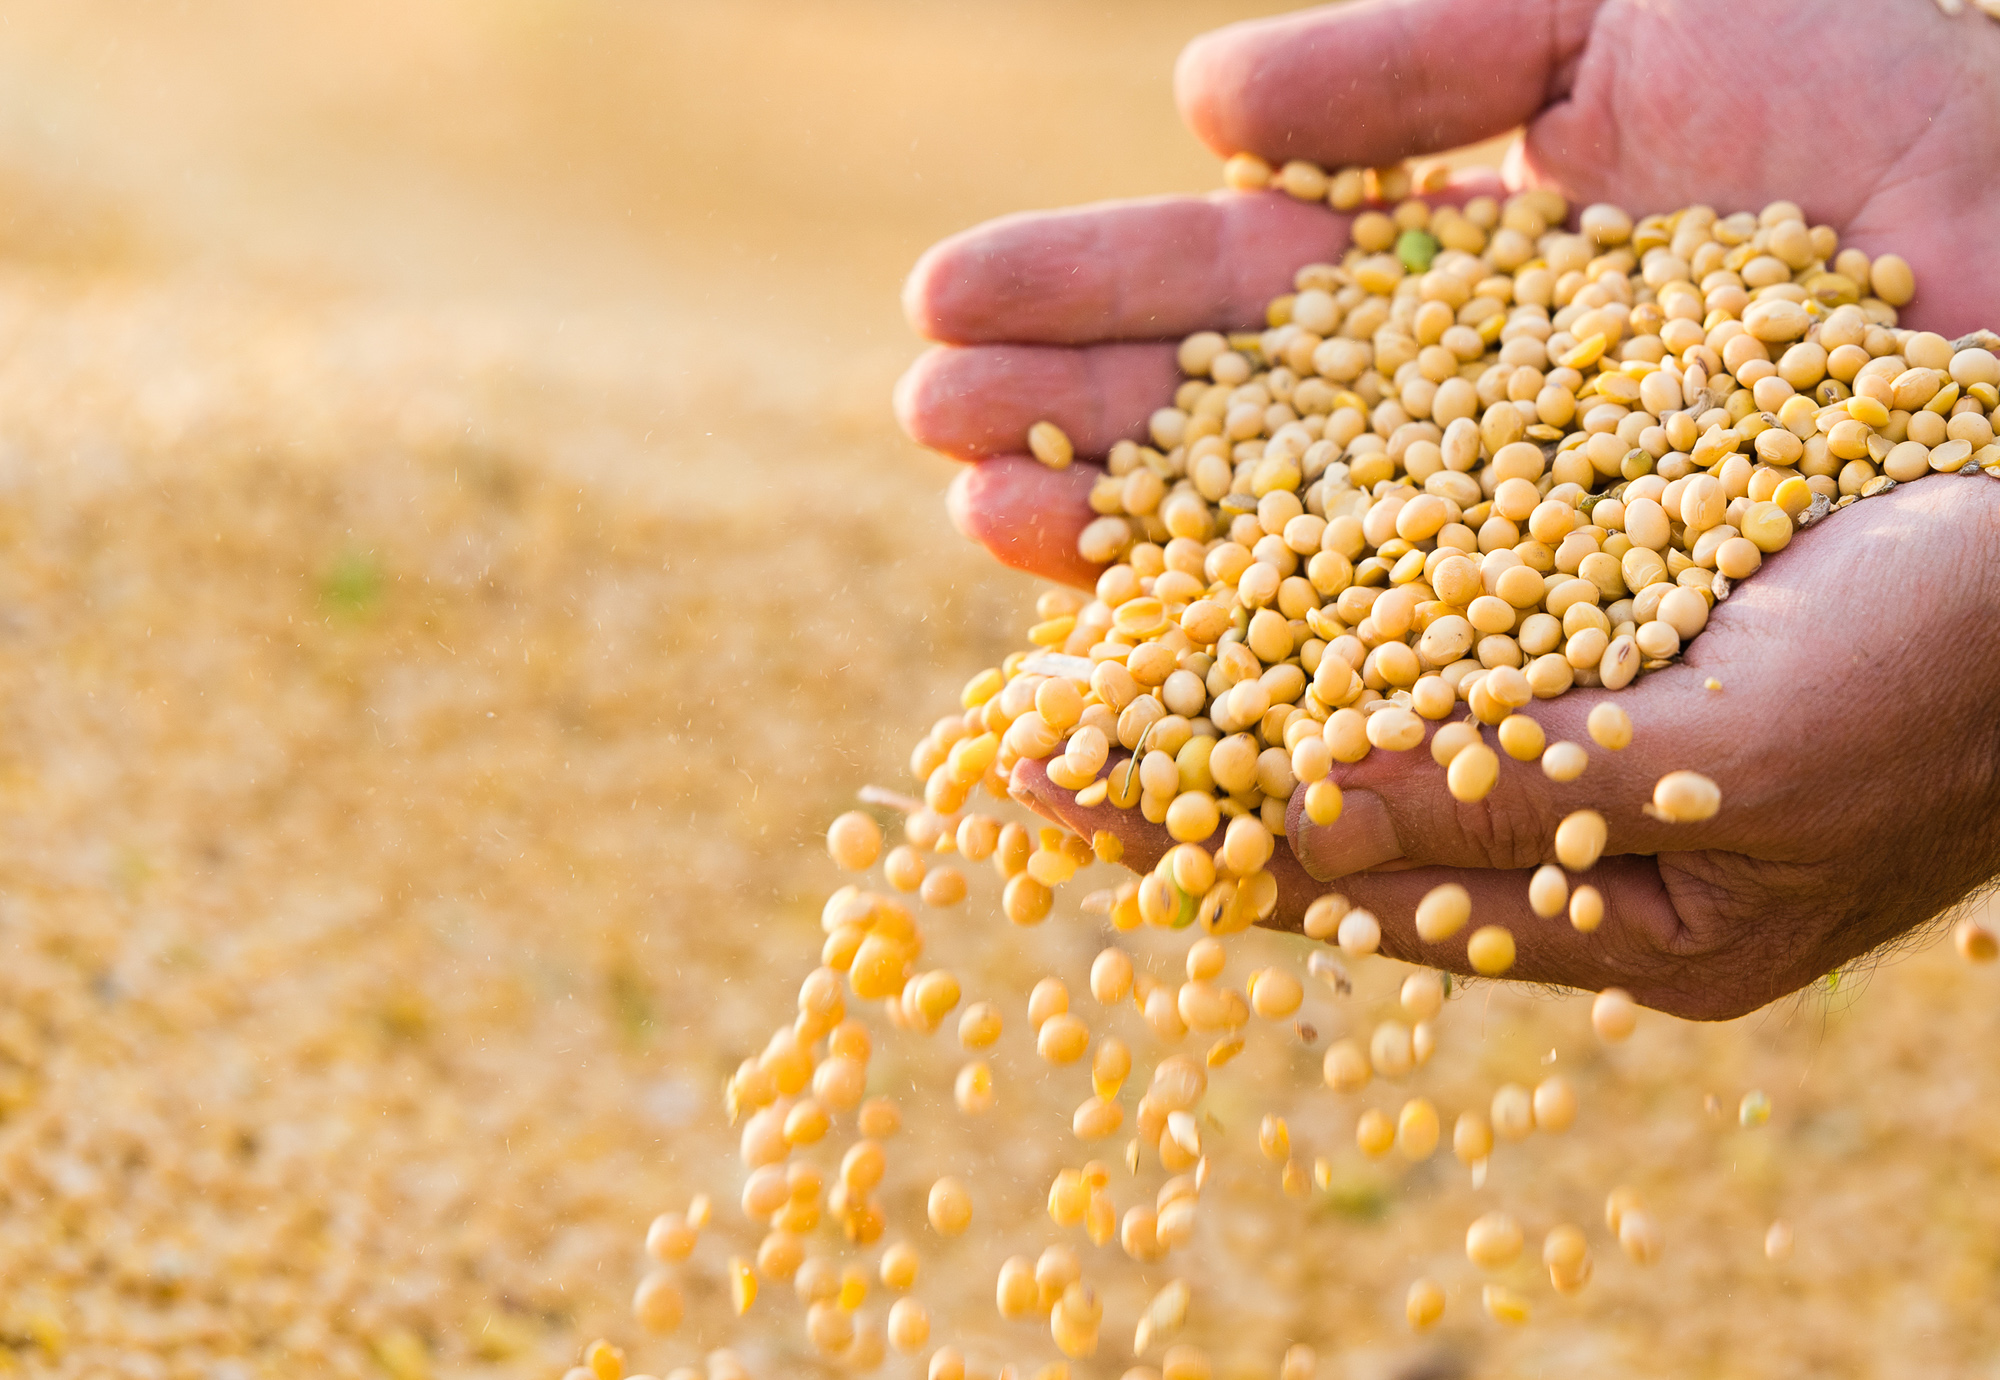 Ripe soybeans pouring from a farmer's hands